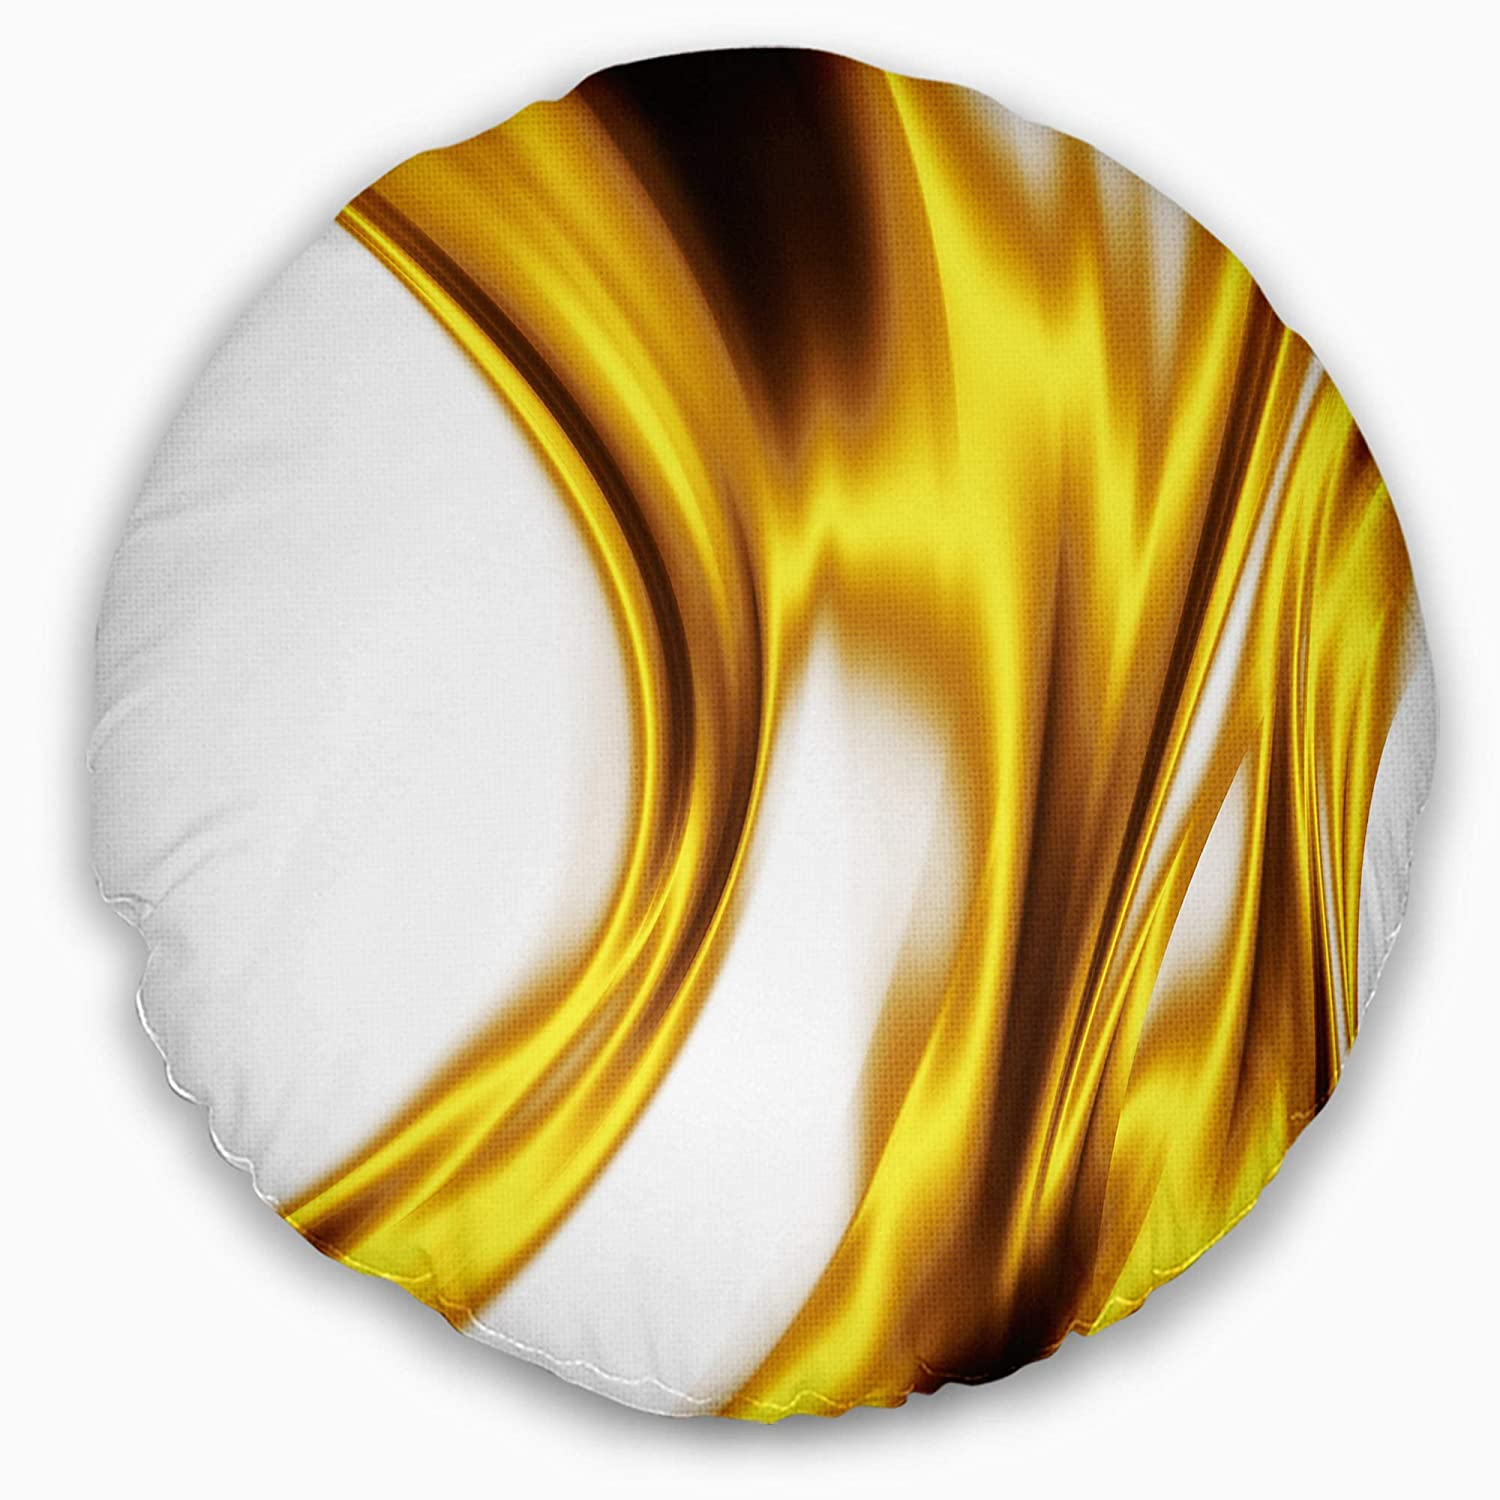 Designart CU8408-20-20-C Bright Gold Texture Pattern' Abstract Round Cushion Cover for Living Room, Sofa Throw Pillow 20'